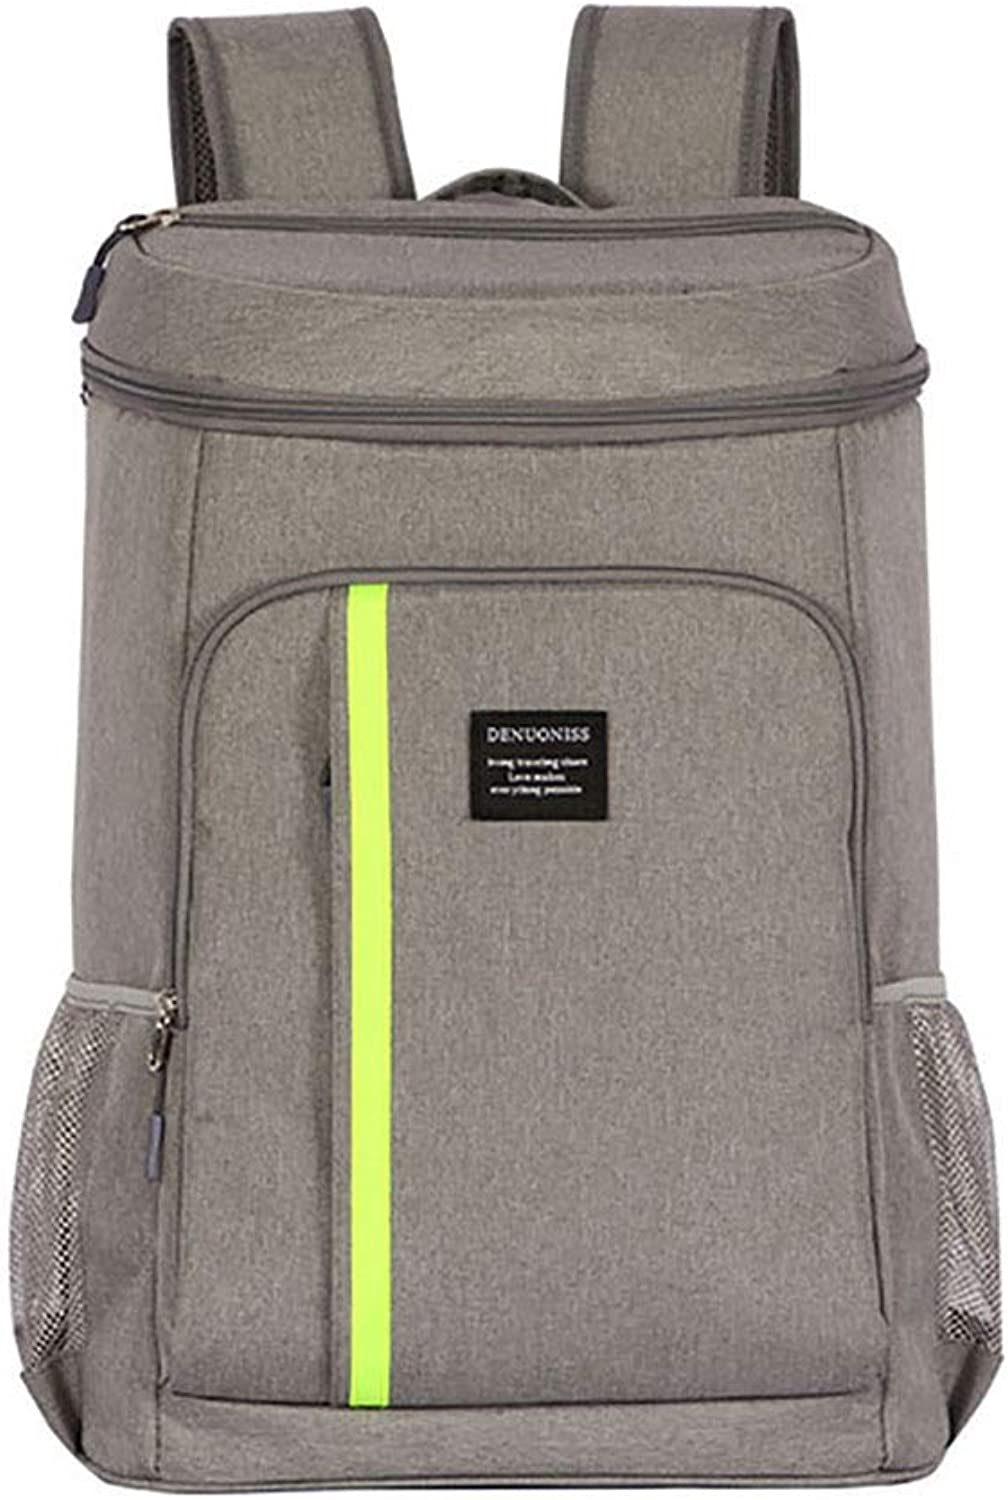 Cool Bag Rucksack Insulated Soft Family Leakproof Cool Box Large Capacity Lightweight Waterproof Cooler Backpack for Camping Hiking Lunch Picnic Daypack